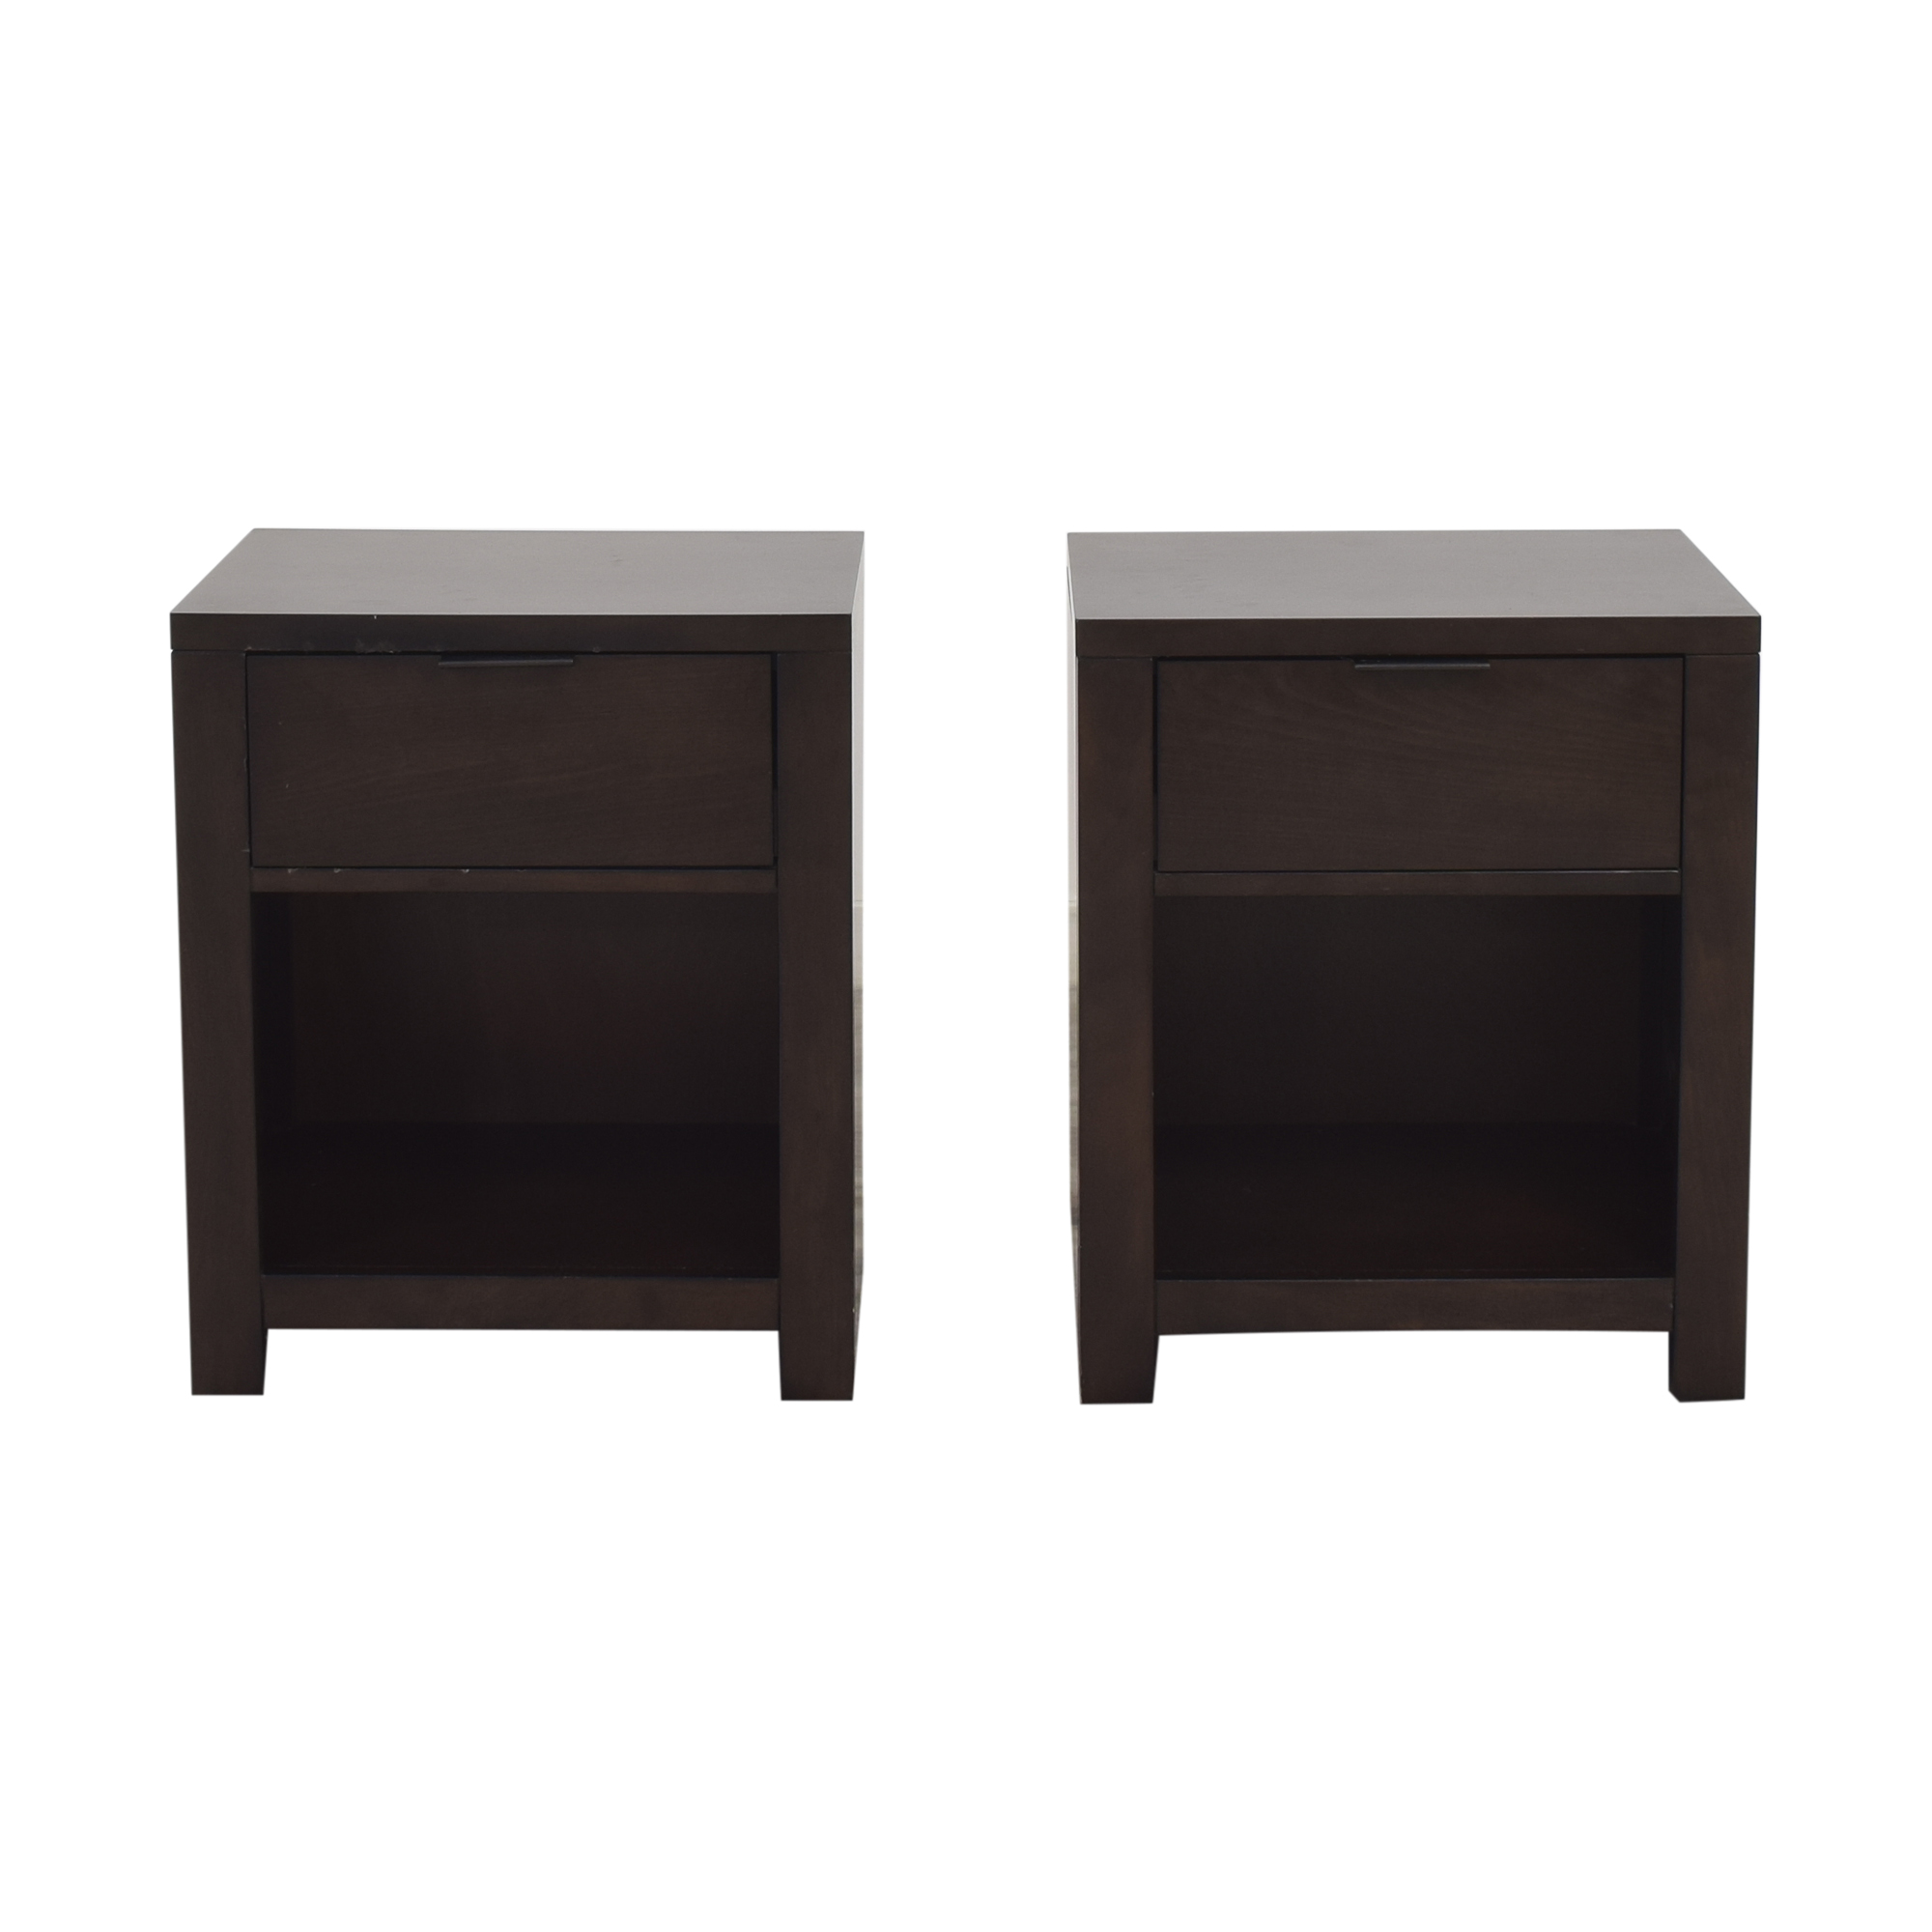 Macy's Macy's Tribeca Nightstands for sale